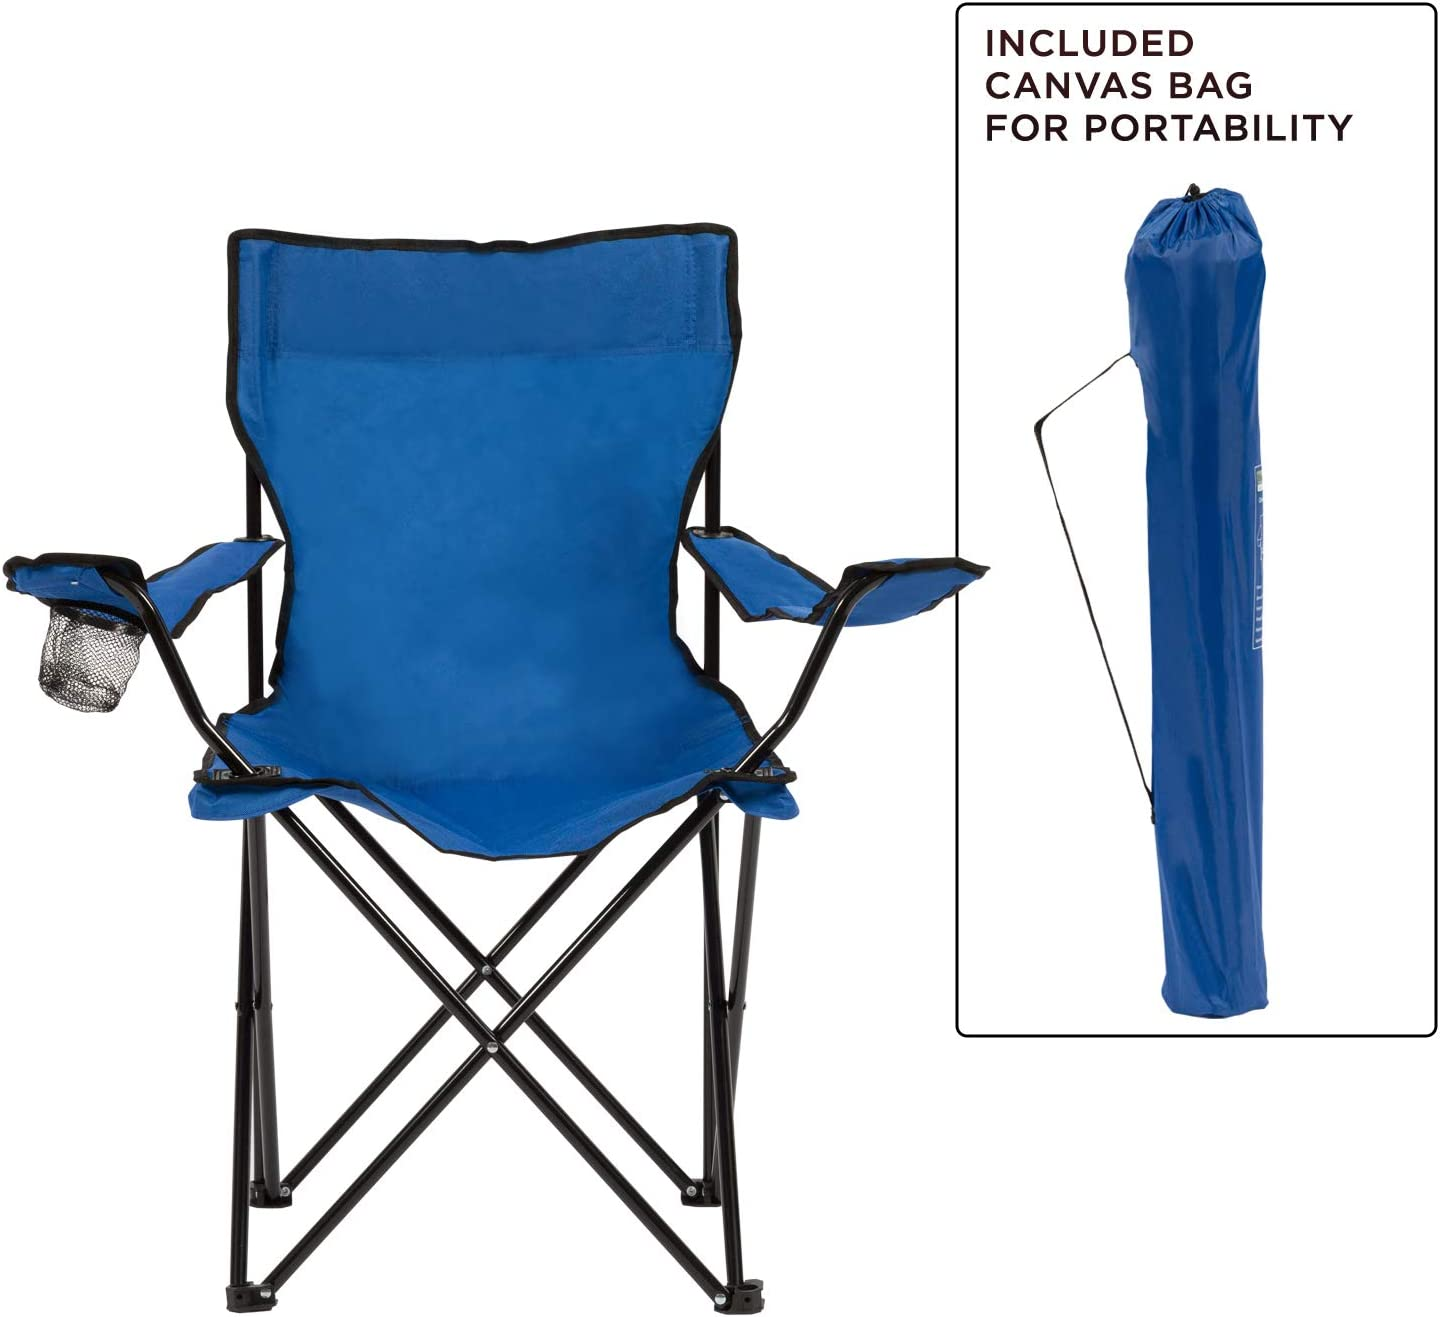 Grey, 2 Pack Homewell Portable Folding Chair for Outdoor Beach and Camping